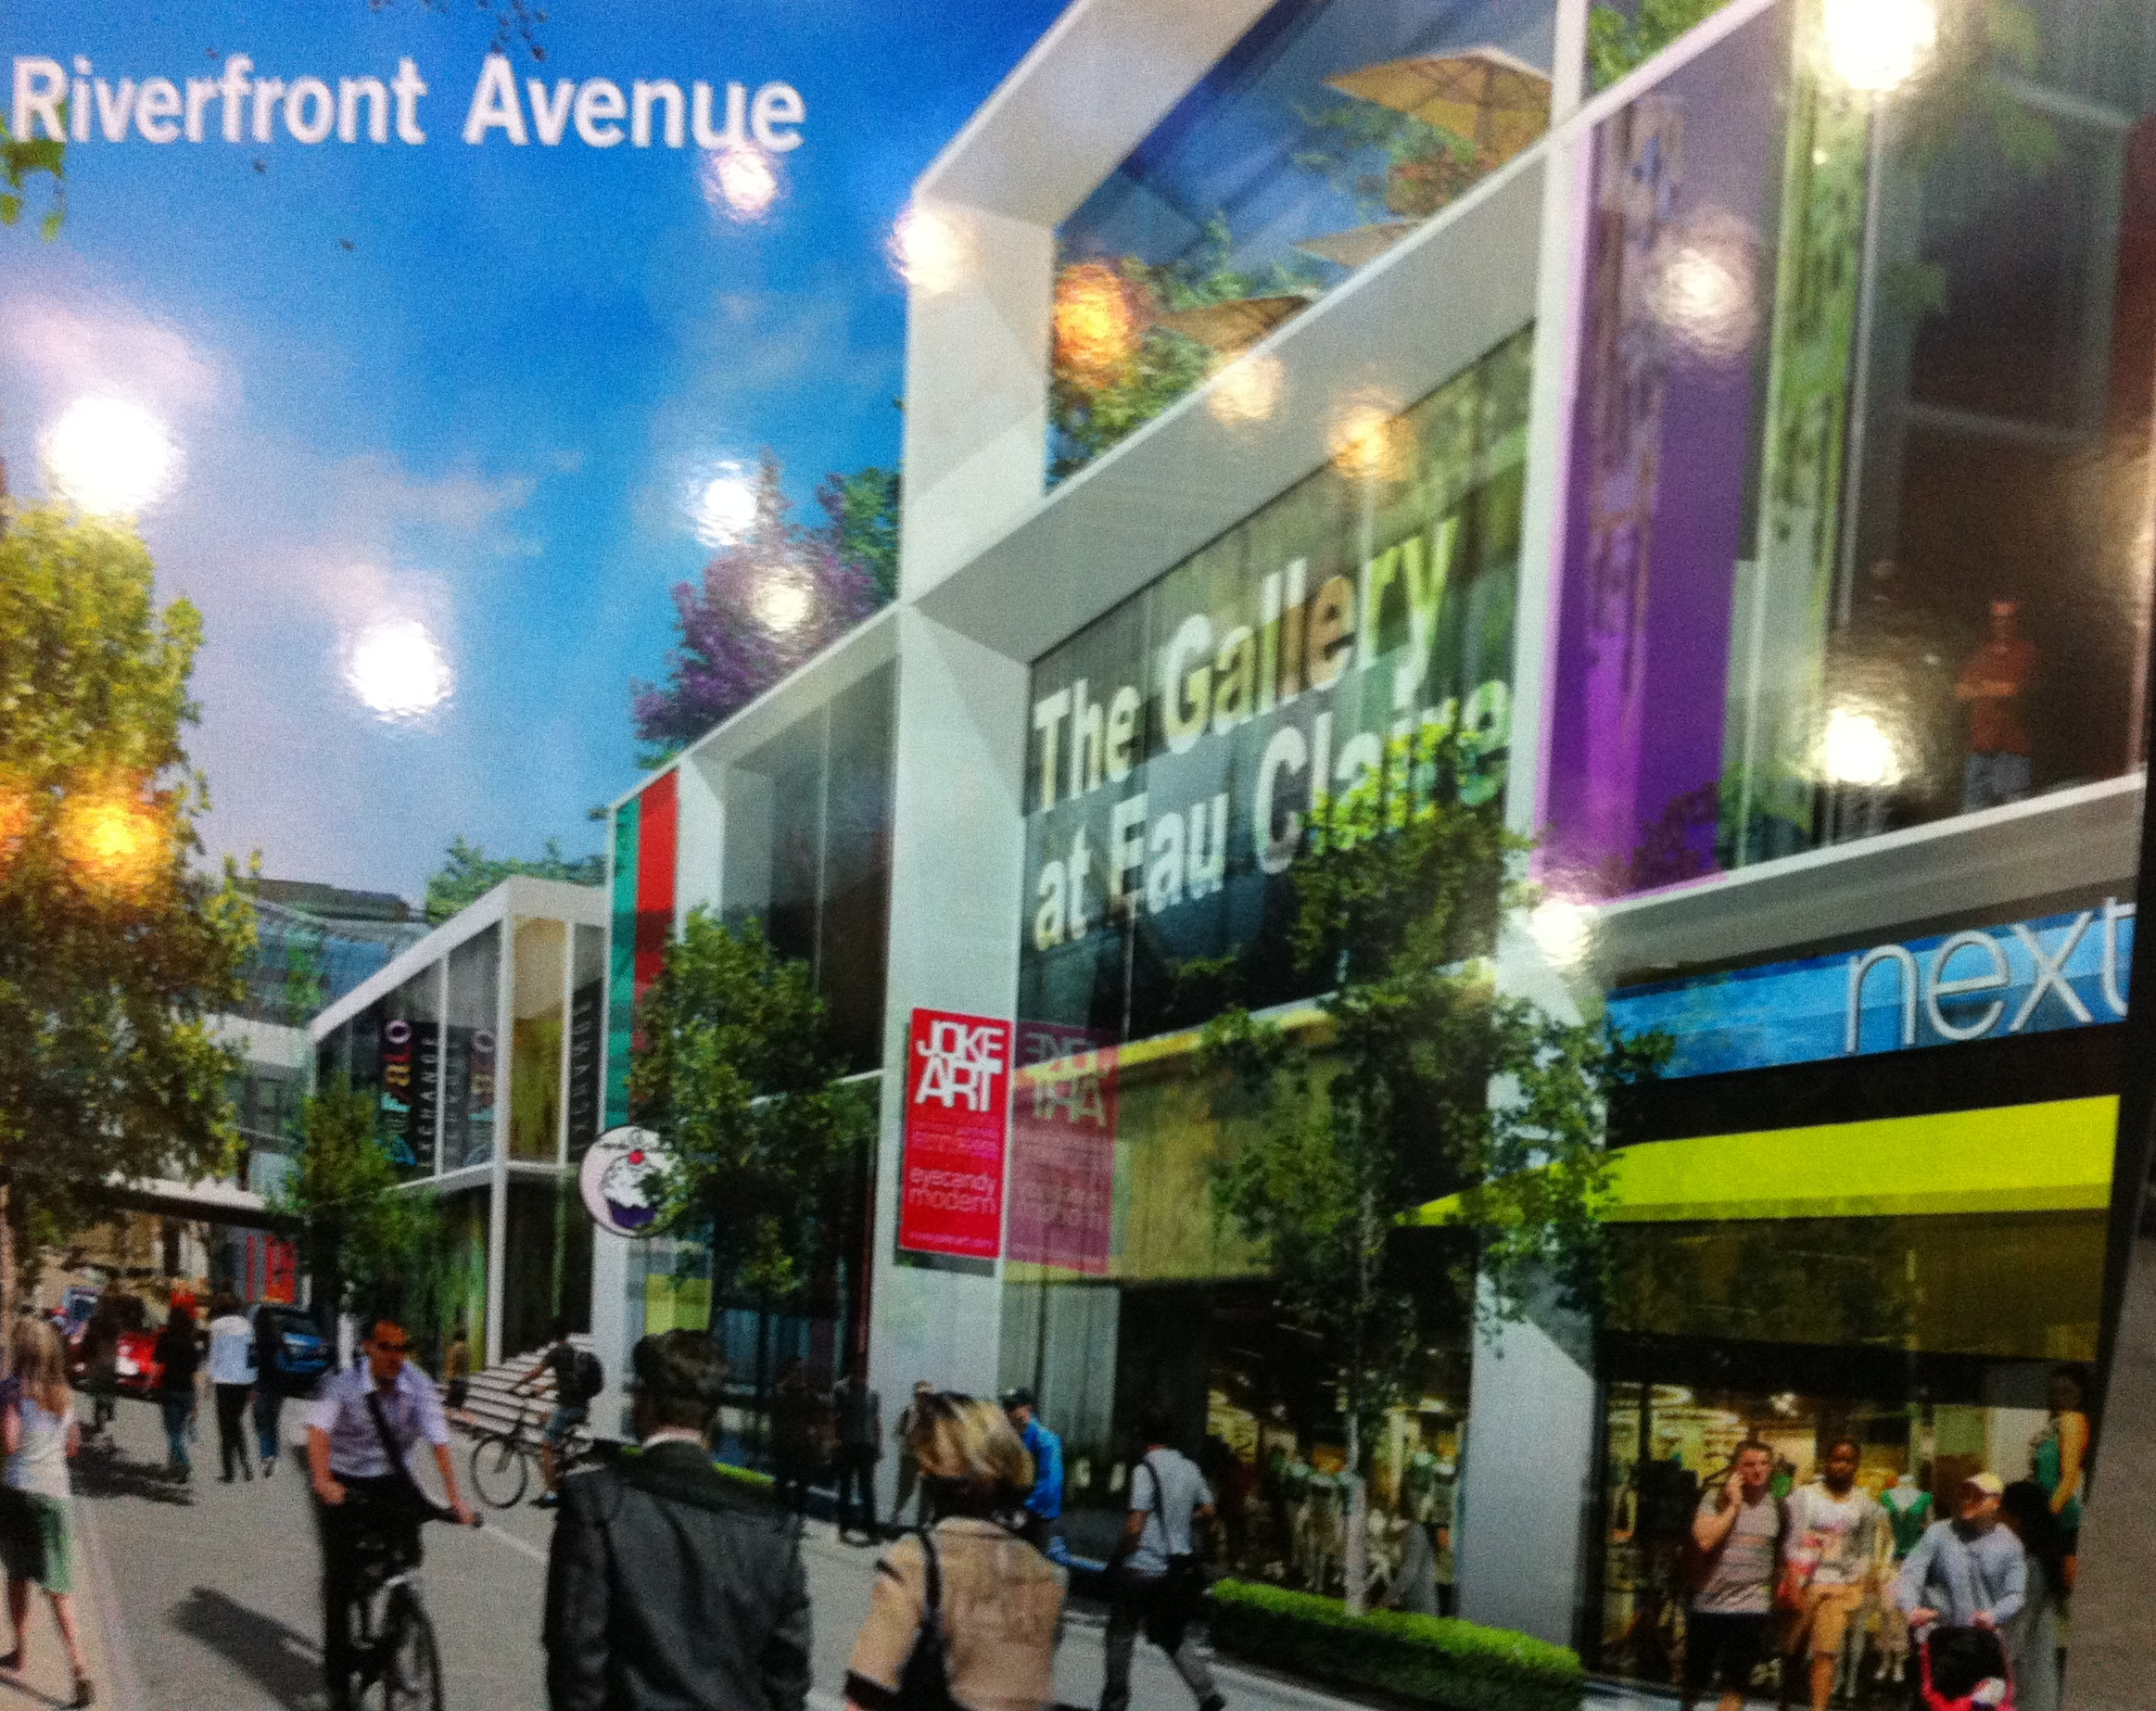 "Plans call for Riverfront Avenue to become a pedestrian street with shops facing onto the street for a more traditional urban ""high street"" experience."